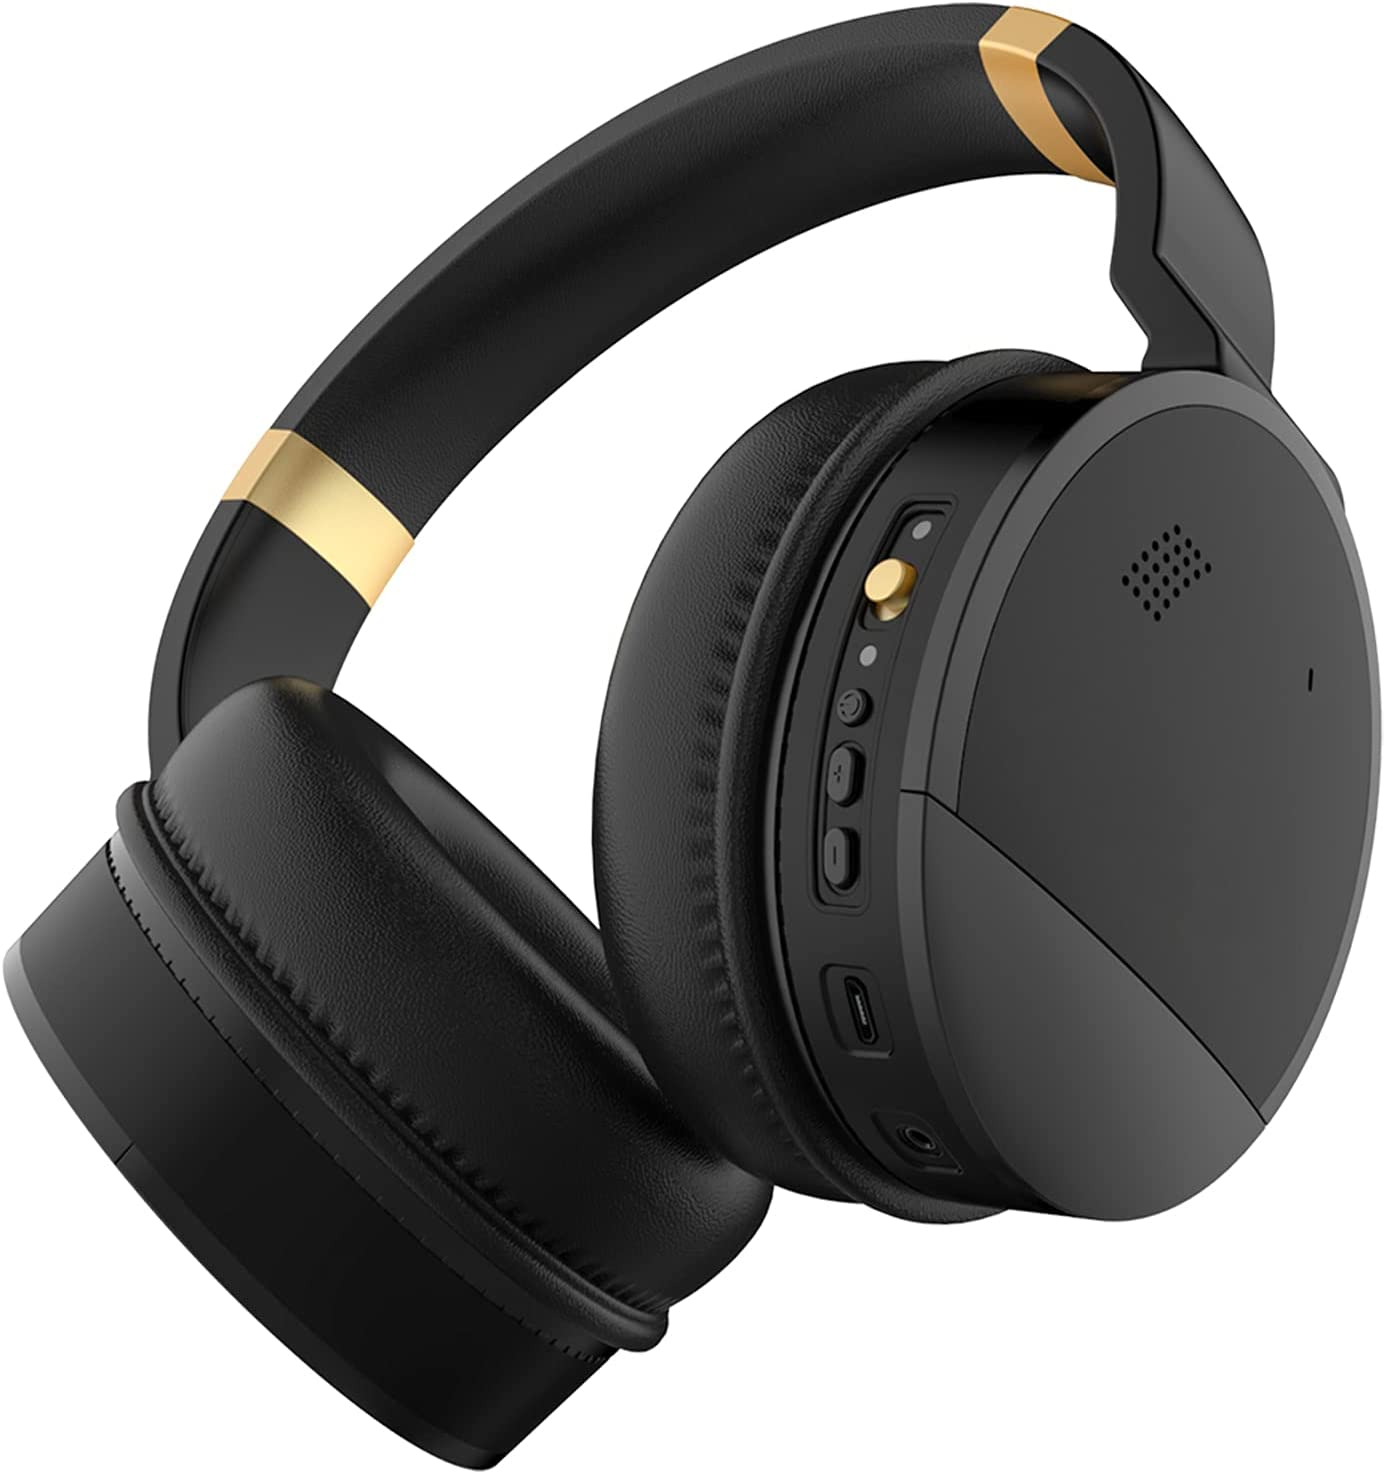 Qisebin E8 Active Noise Cancelling Wireless Headphones, Over-Ear Bluetooth Headphones with Deep Bass, Fit Comfort, Built-in Microphone, 25 Hours of Listening Time - Gold